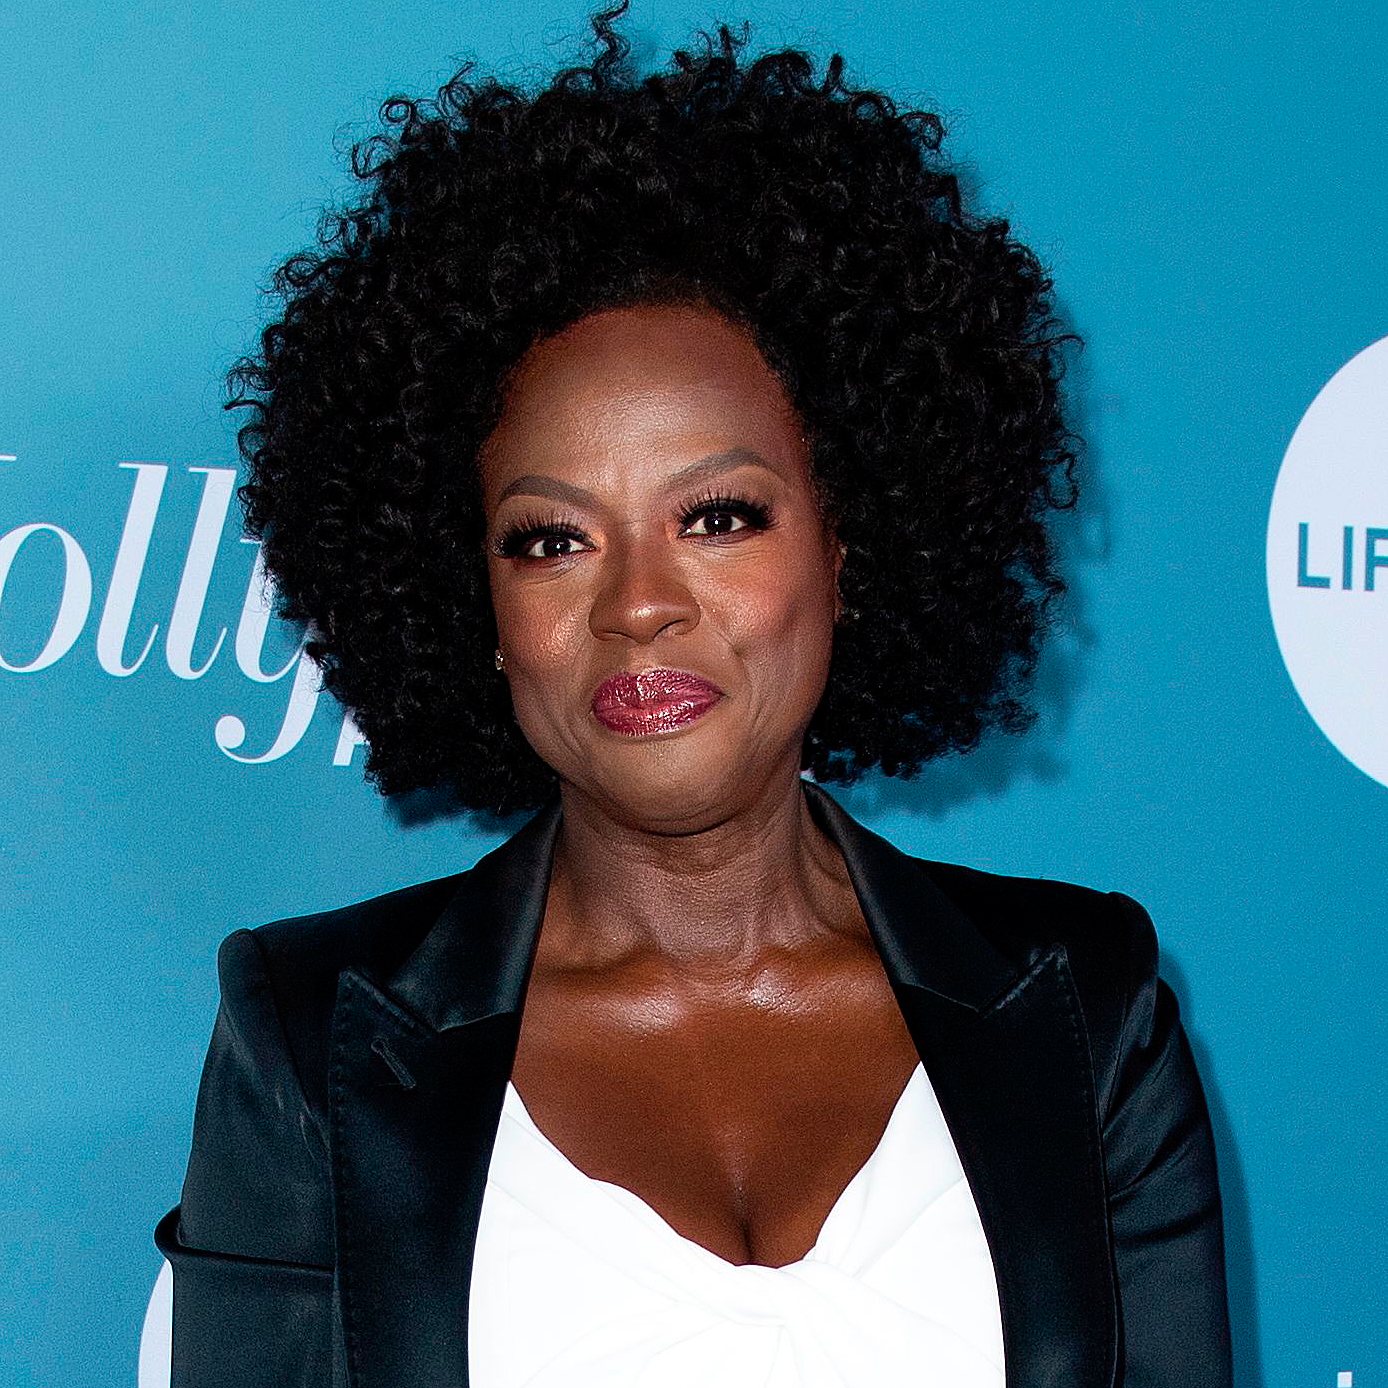 """Viola-Davis - """"The best life is when we leave a trail. We leave something on this earth bigger than us,"""" Davis tweeted of Singleton. """"You inspired a generation of Artists. We will shoulder on....'May flights of angels sing thee to thy rest'. RIP"""""""